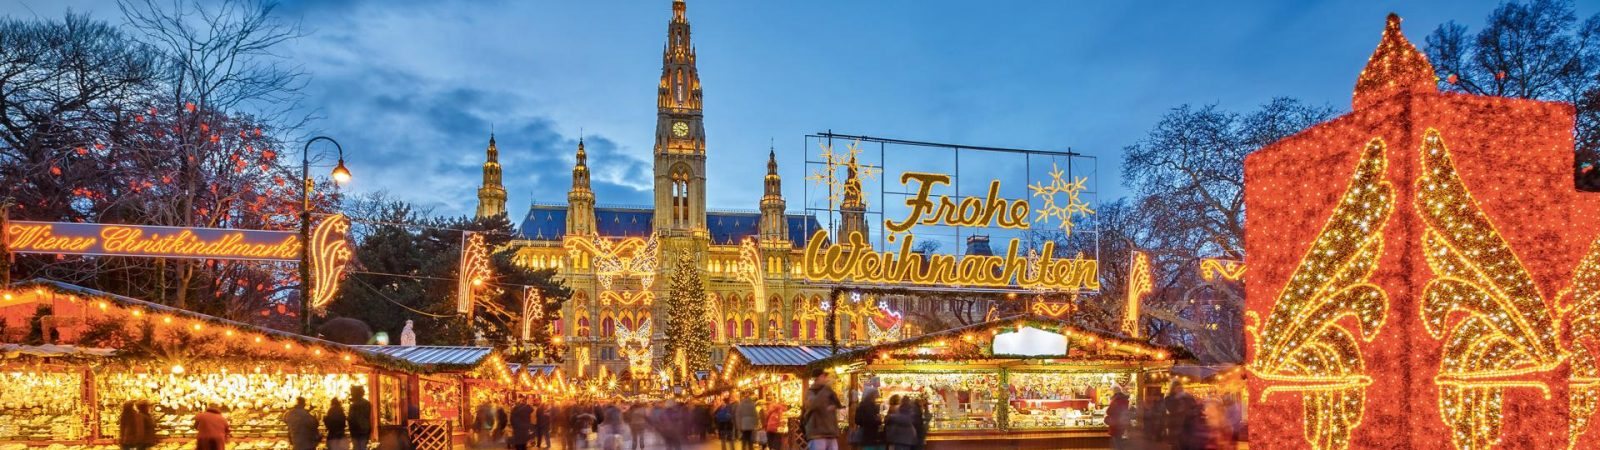 2019 Magic Of The Advent Christmas Market Cruise Brand G Vacations